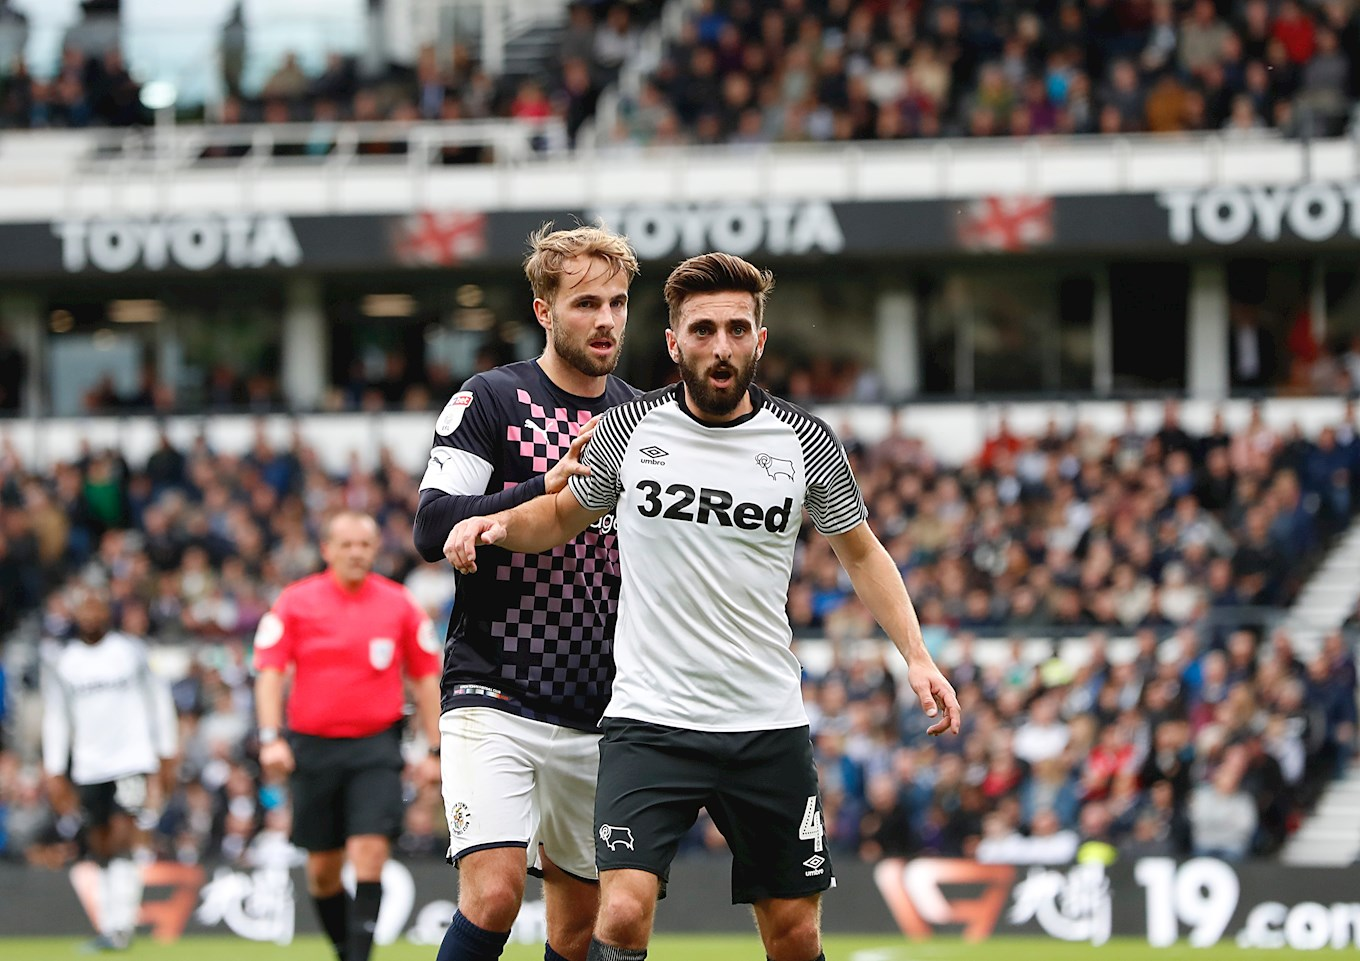 Hatters playmaker Andrew Shinnie gets tight to his brother Graeme, the Derby County midfielder, in the game at Pride Park